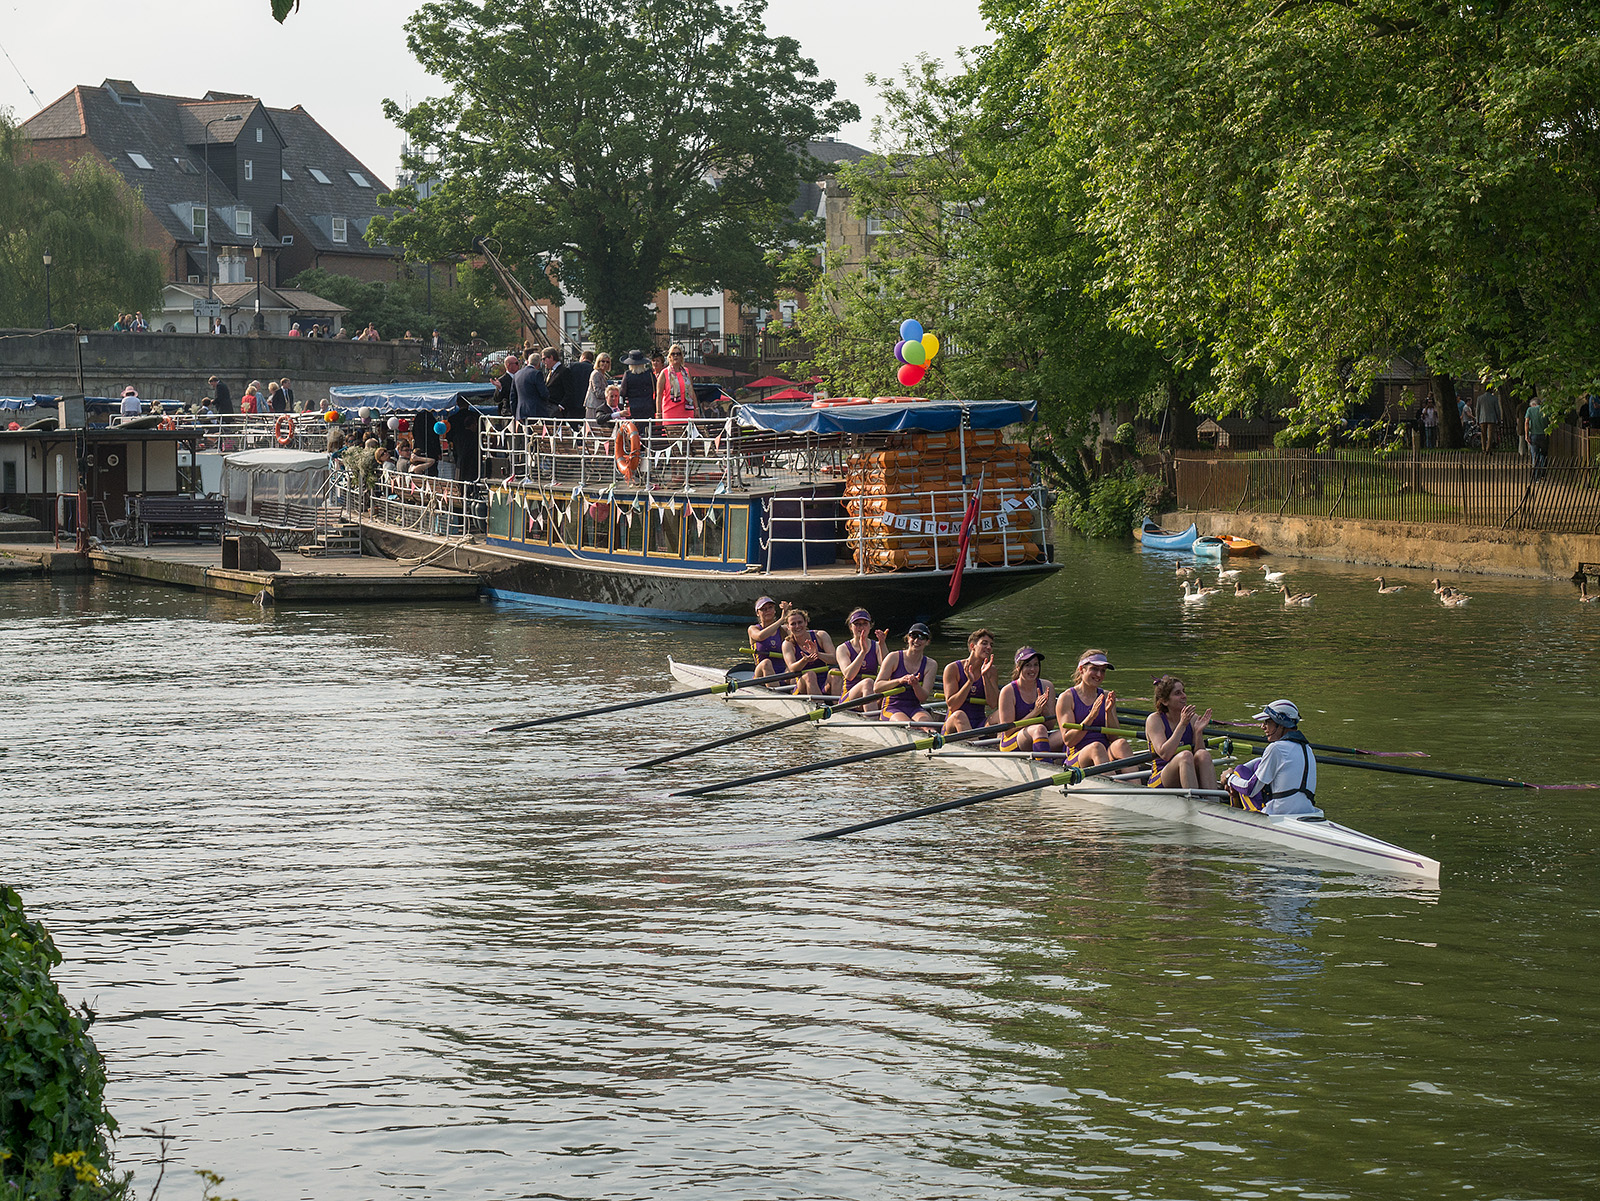 Winners - maintained their position at Head of the River